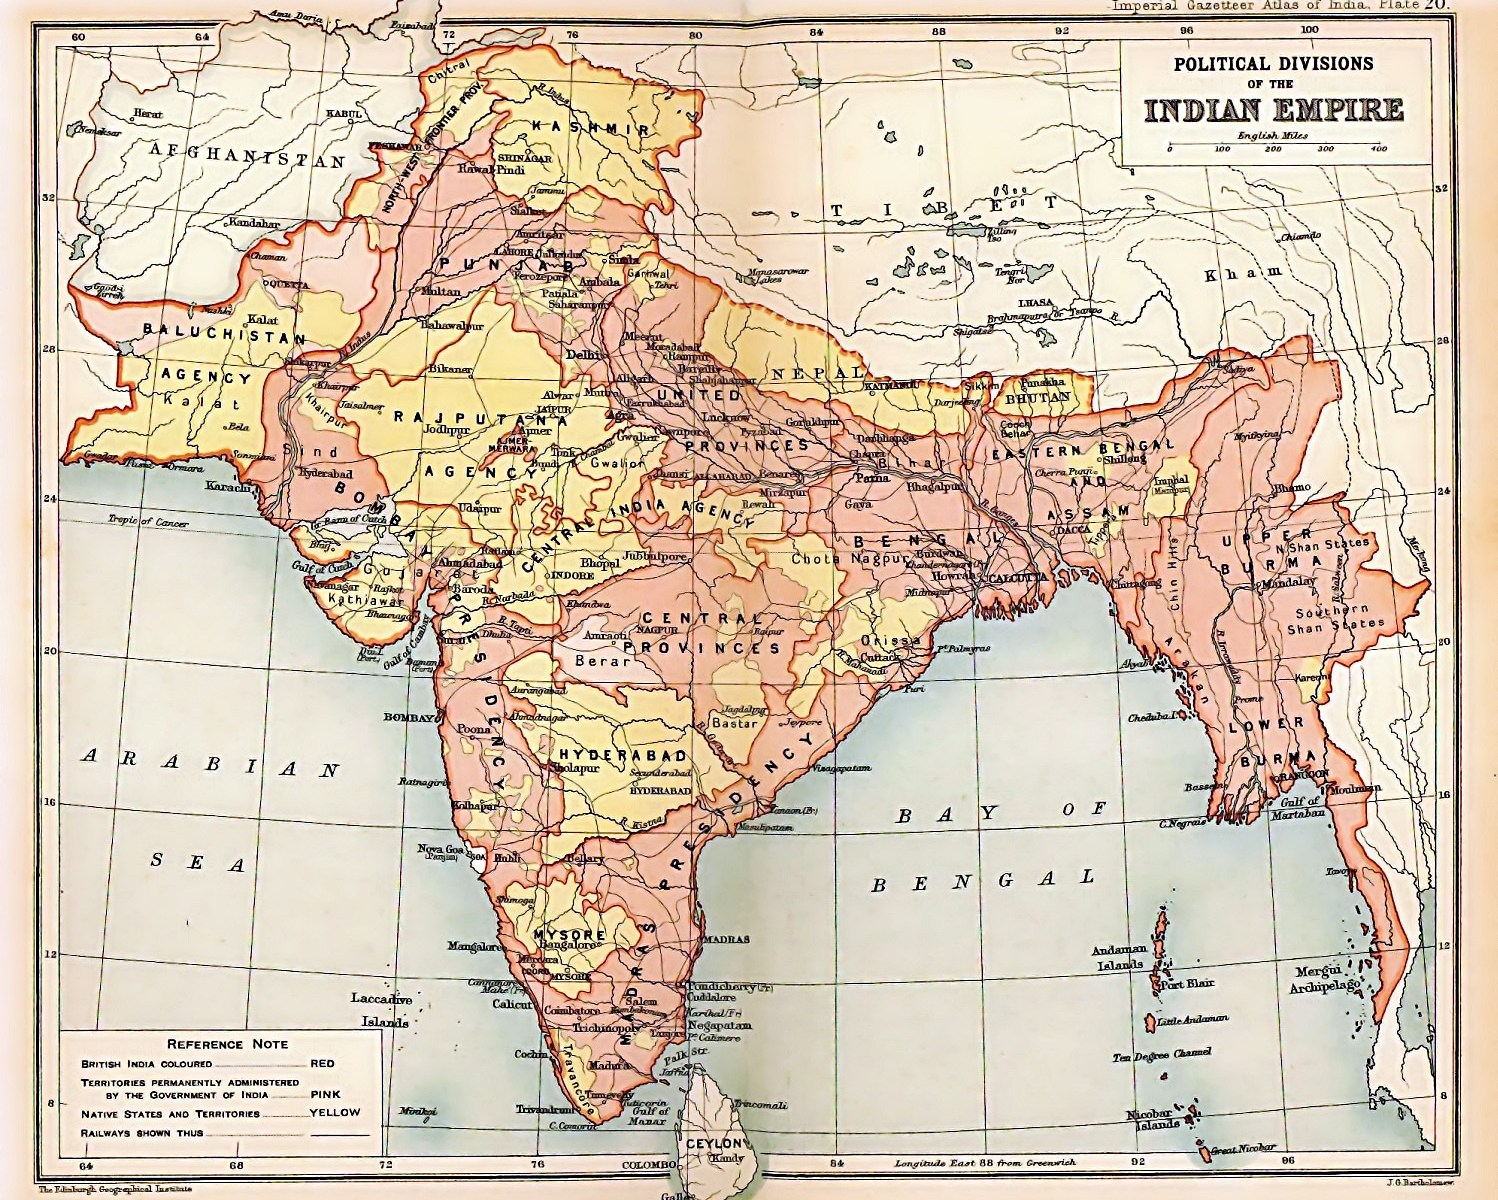 India_1909_map